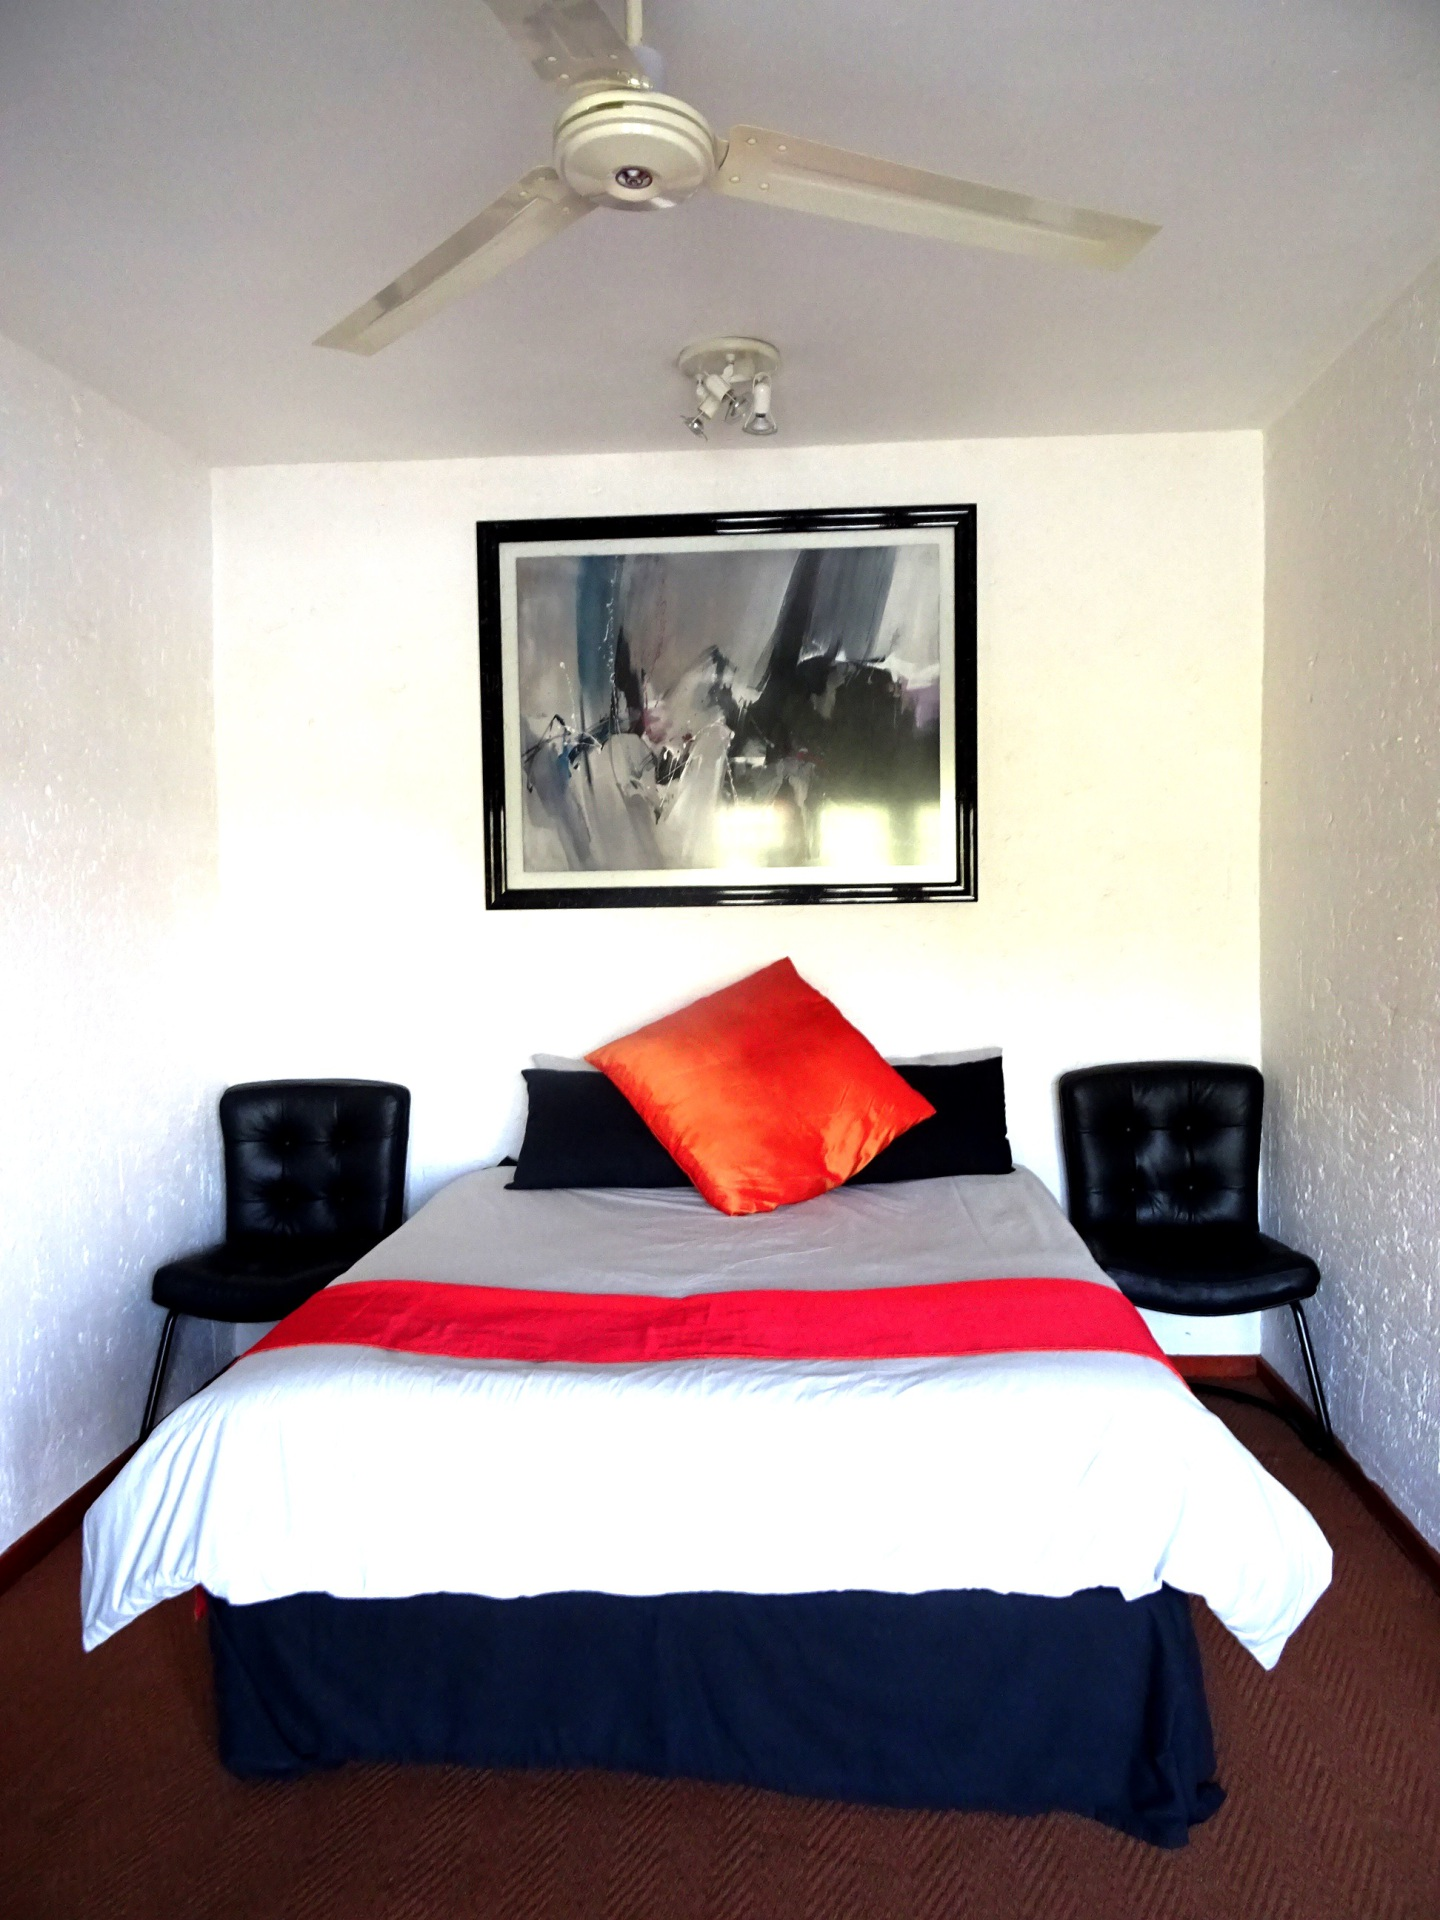 Queen size bed in 4th bedroom, Accommodation Hartbeespoort dam, 2,5 bathrooms